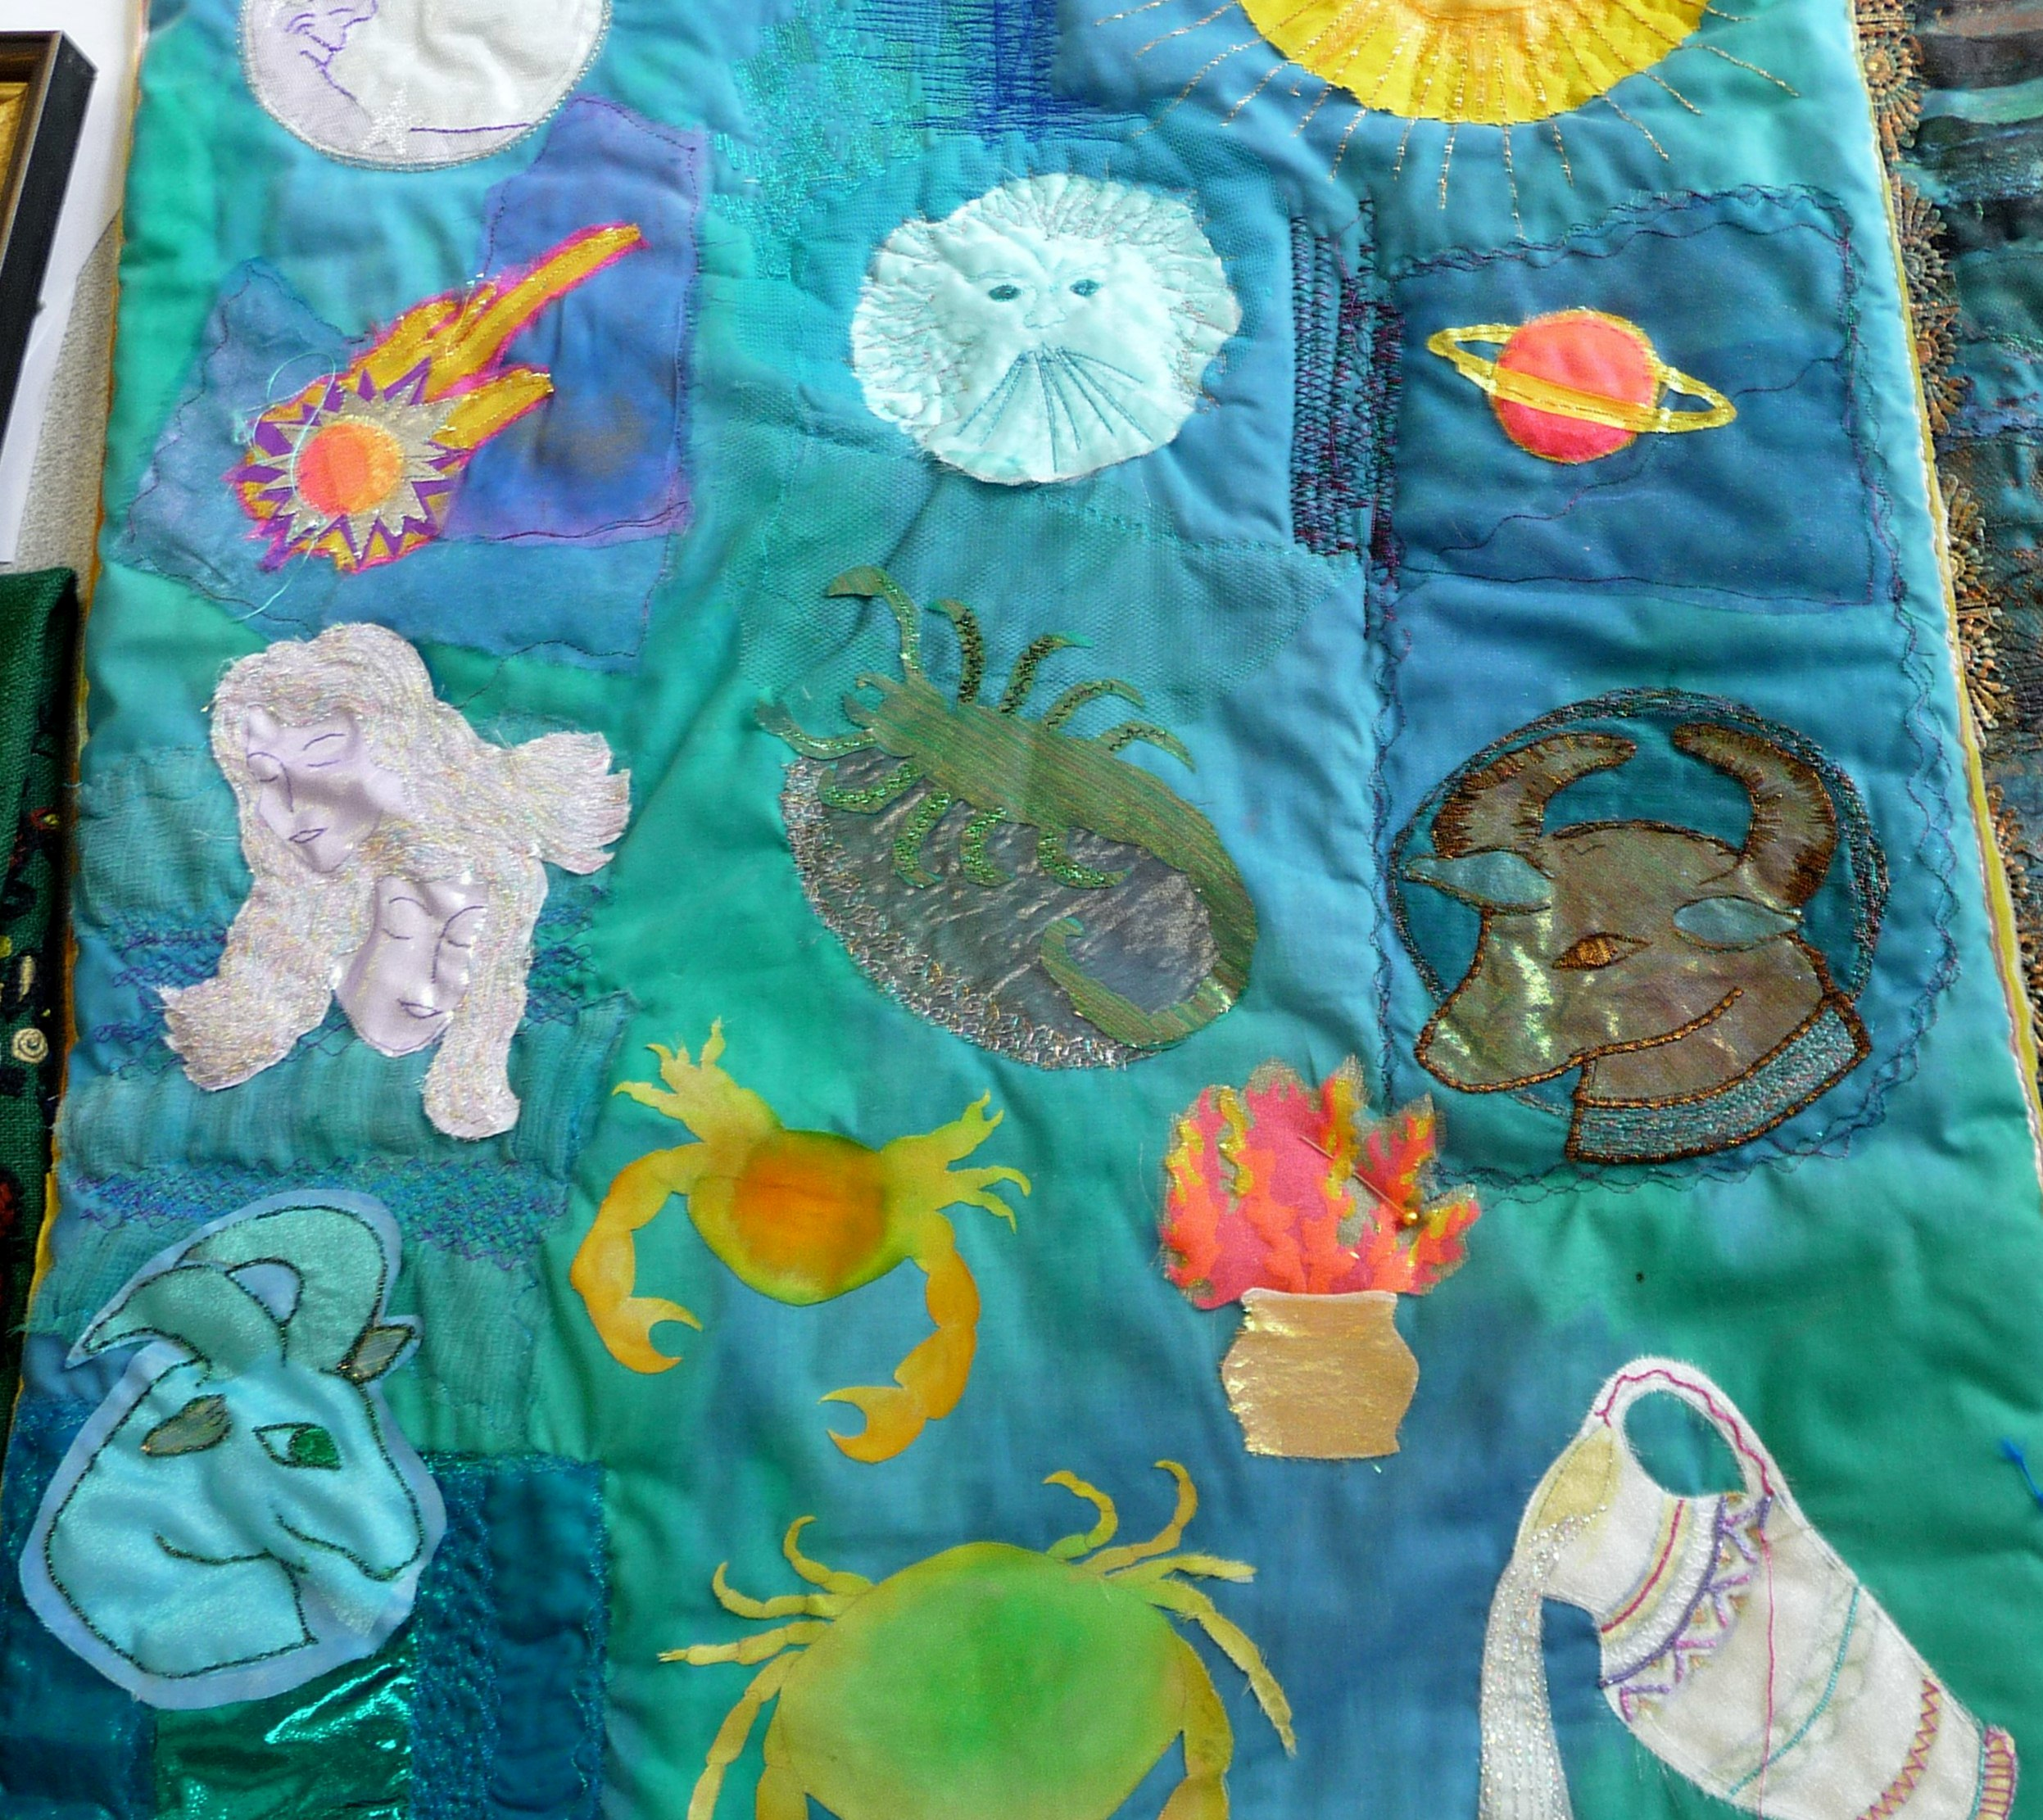 unfinished embroidery by Beryl Waterfield, Altrincham EG